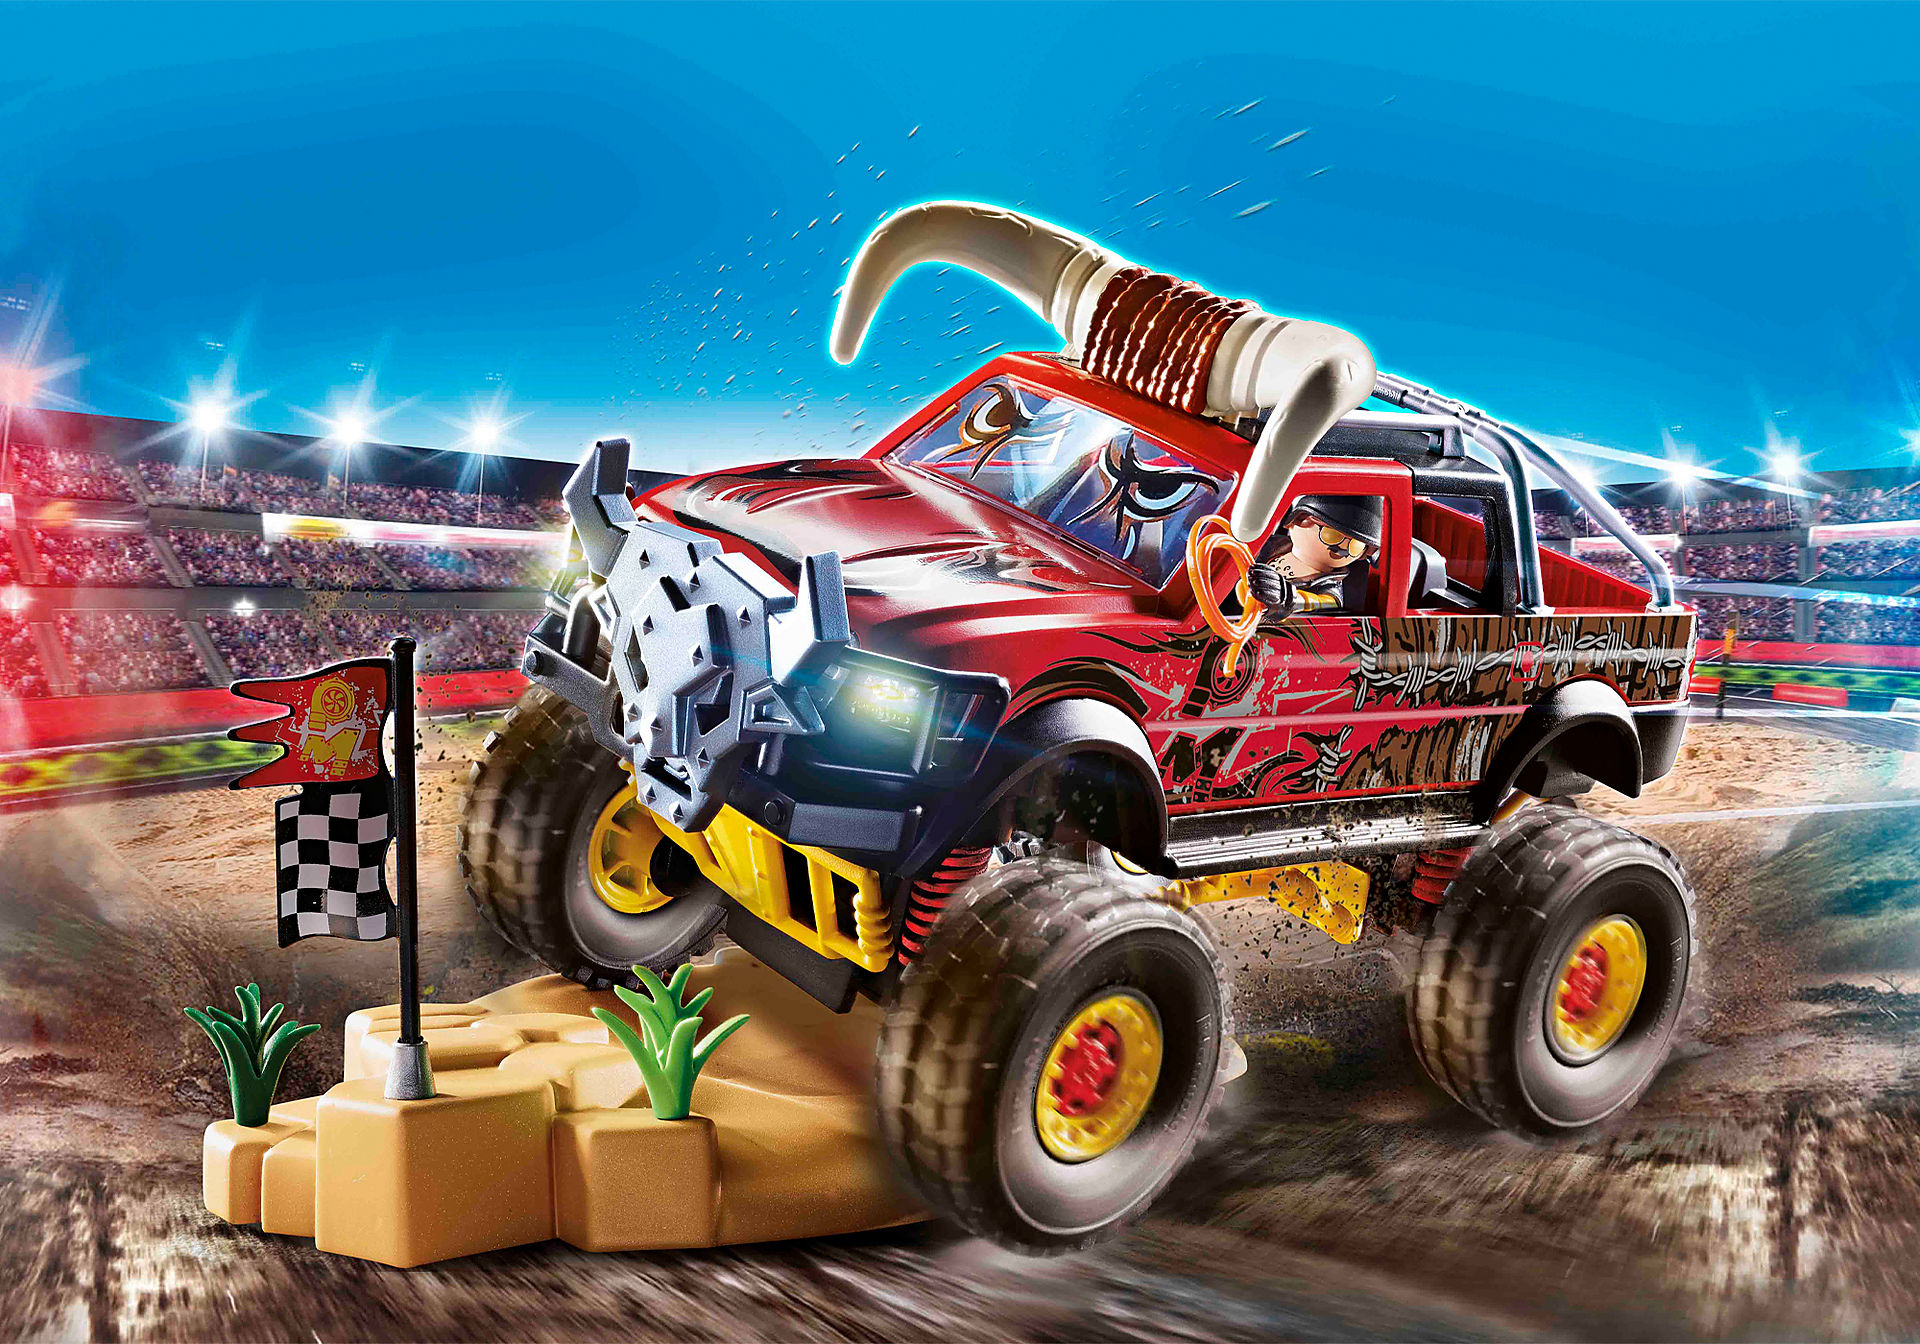 70549 Stuntshow Monster Truck Horned zoom image1